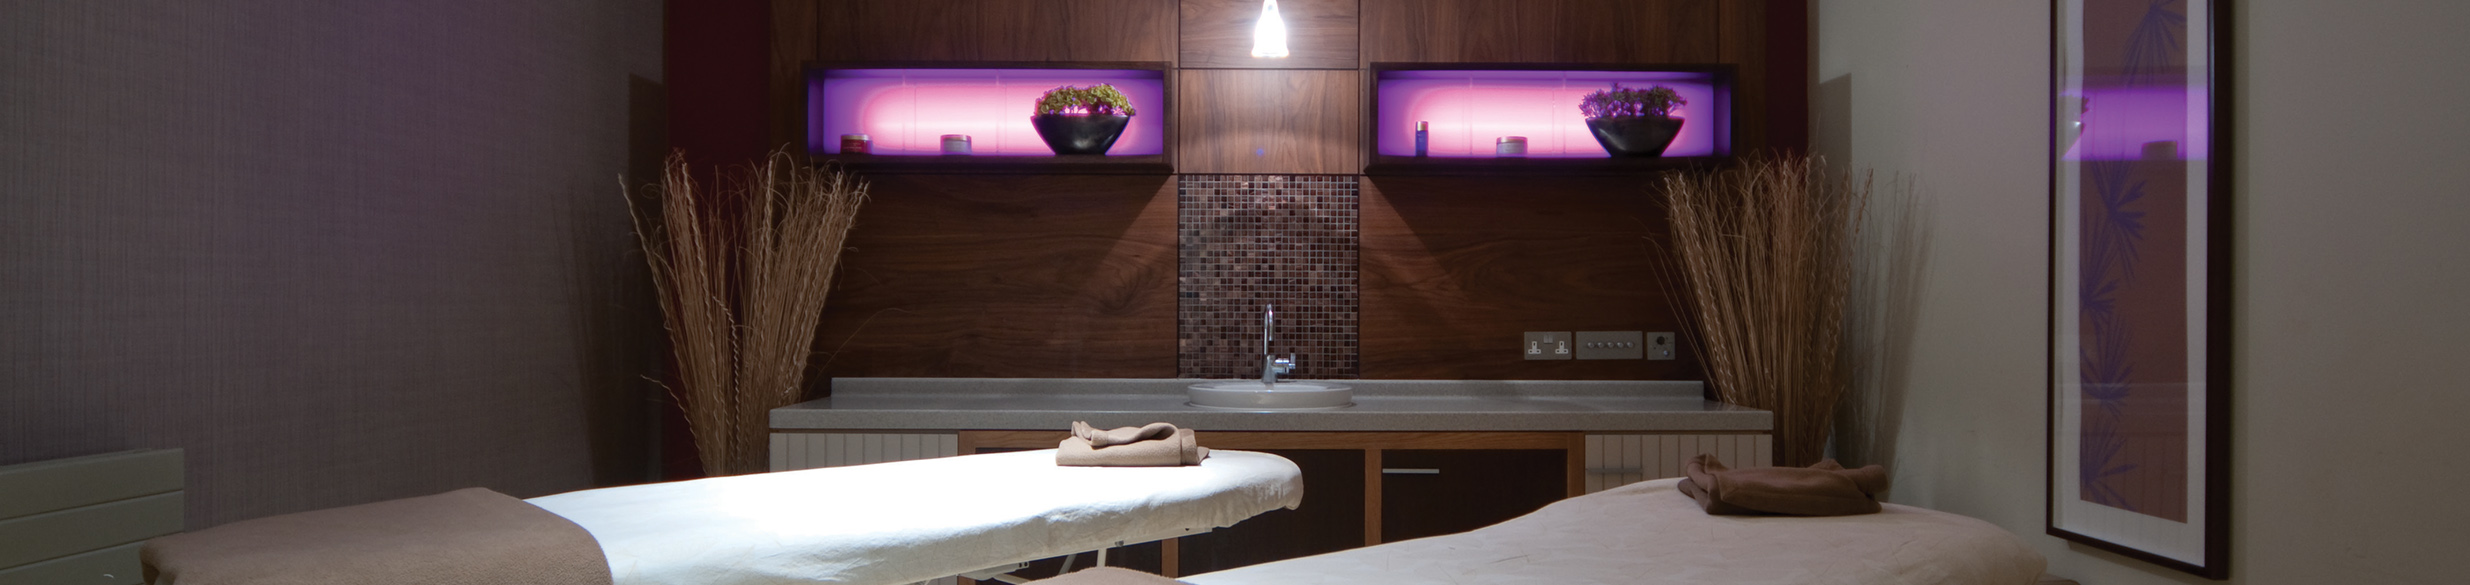 Signature Treatments Champneys Massage